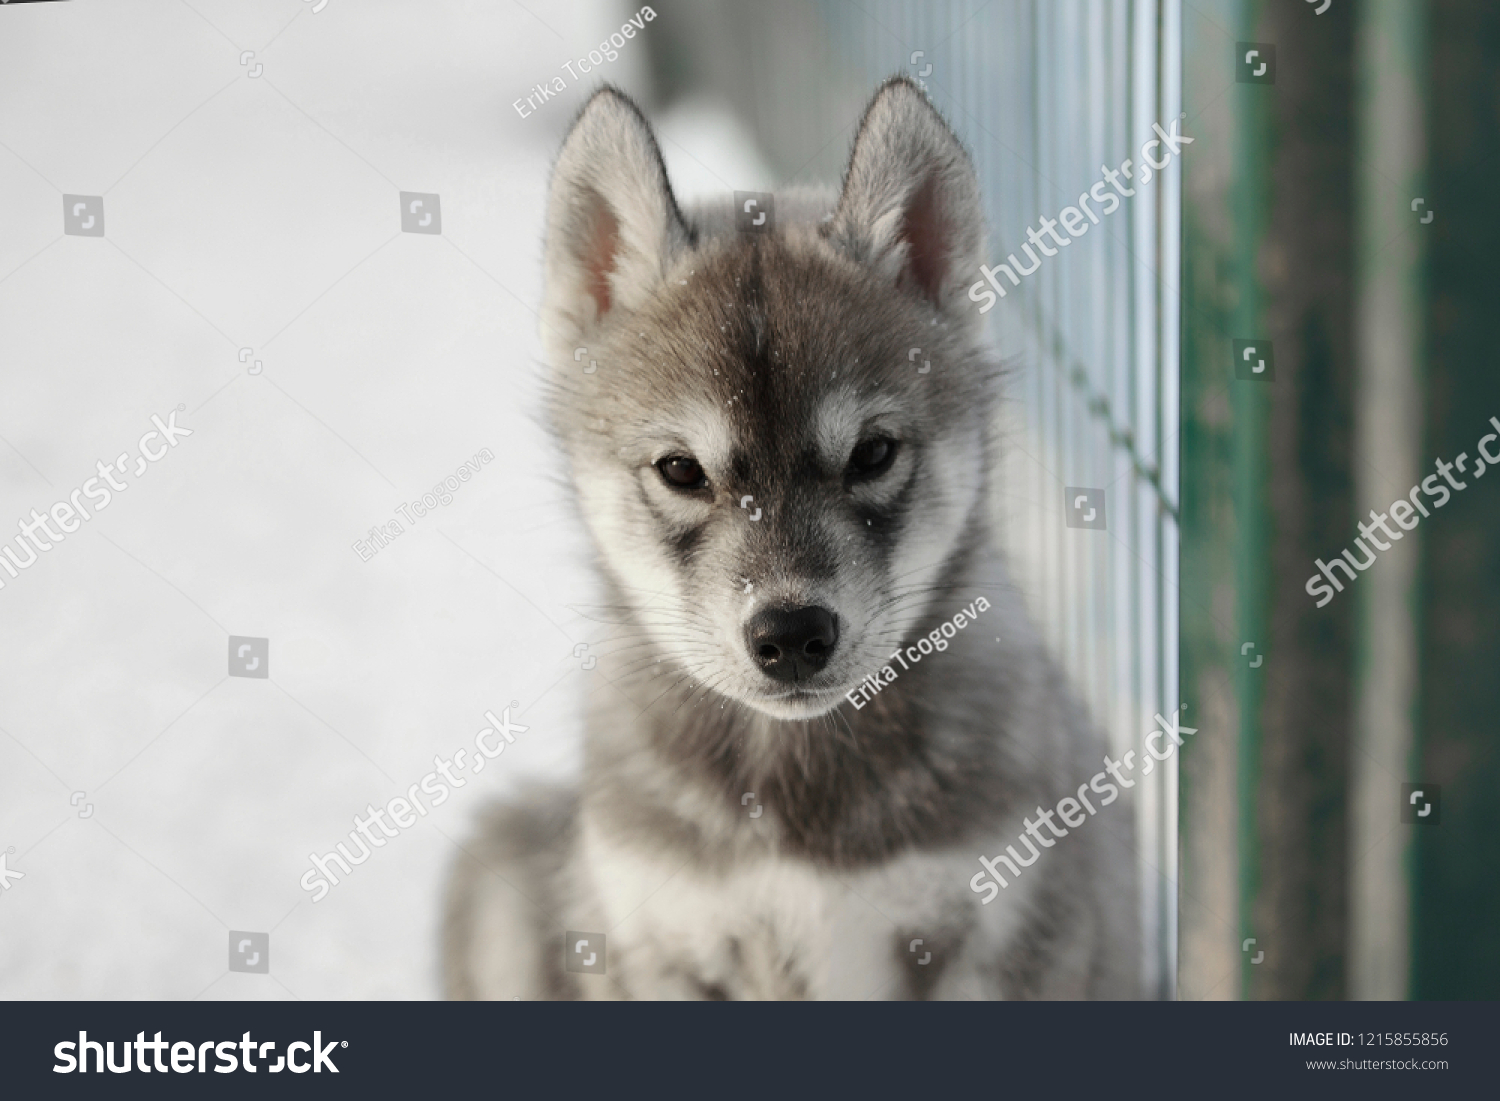 Cute Agouti Siberian Husky Puppies Stock Photo Edit Now 1215855856